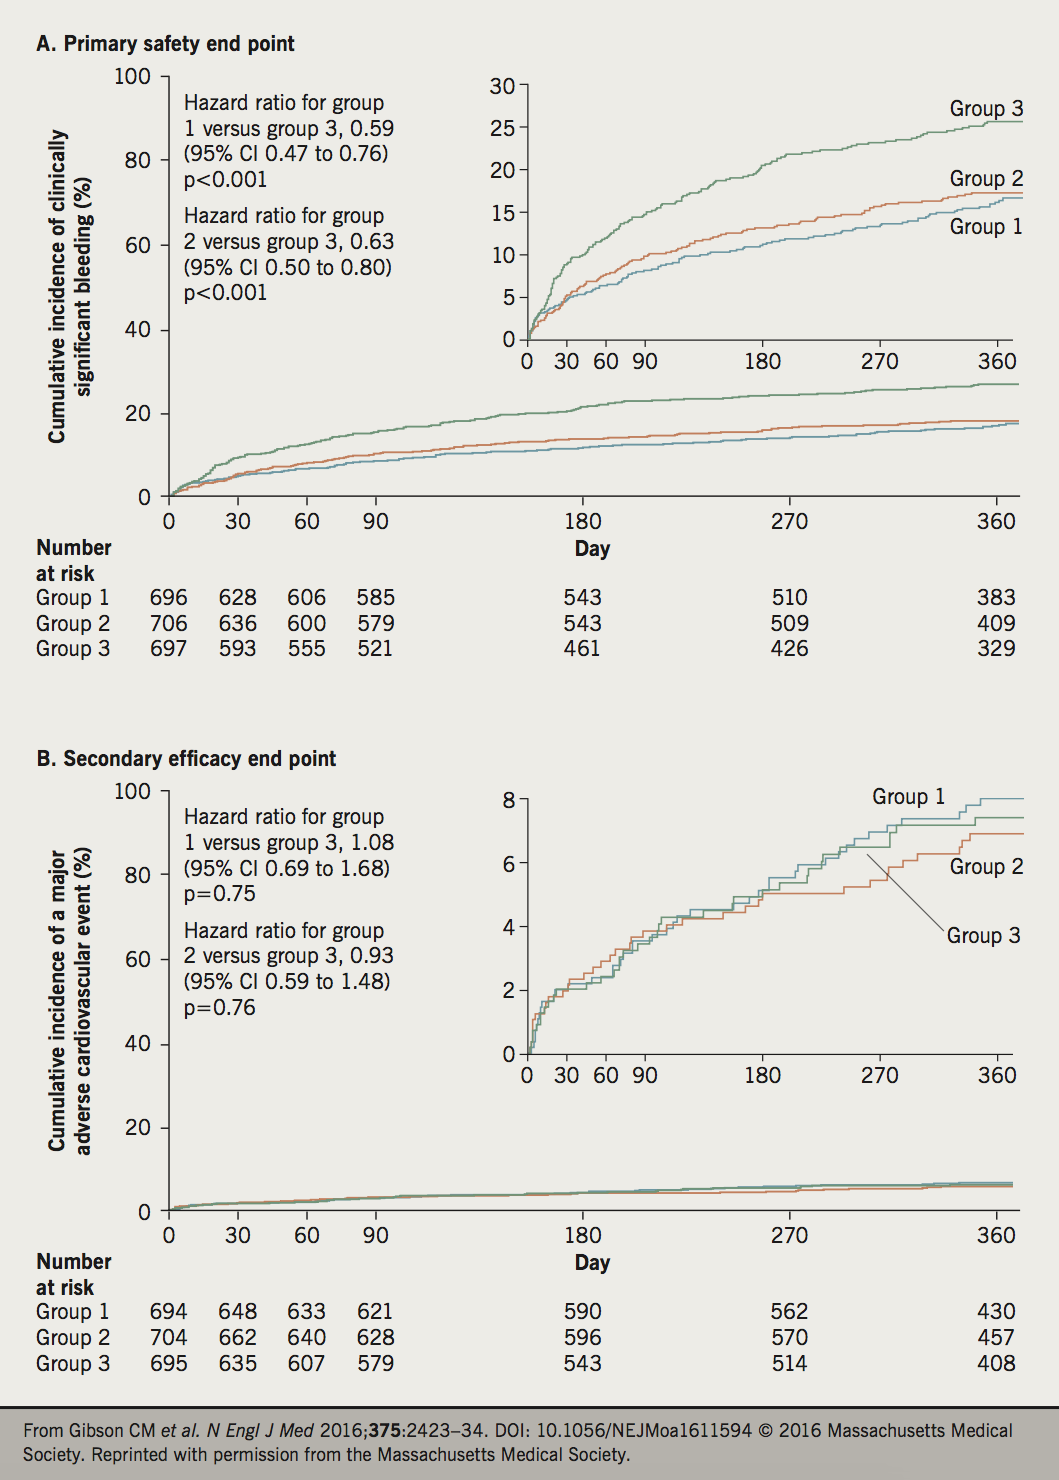 Figure 2. Cumulative incidence of the primary safety end point and a secondary efficacy end point. Panel A shows the cumulative incidence of the primary safety end point of clinically significant bleeding (a composite of major bleeding or minor bleeding according to Thrombolysis in Myocardial Infarction [TIMI] criteria or bleeding requiring medical attention), and Panel B shows the cumulative incidence of the secondary efficacy end point of major adverse cardiovascular events (a composite of death from cardiovascular causes, myocardial infarction, or stroke) during the treatment period (from the time of the first administration of a trial drug up to 2 days after the trial treatment was discontinued) in the three treatment groups. In each panel, the inset shows the same data on an expanded y-axis